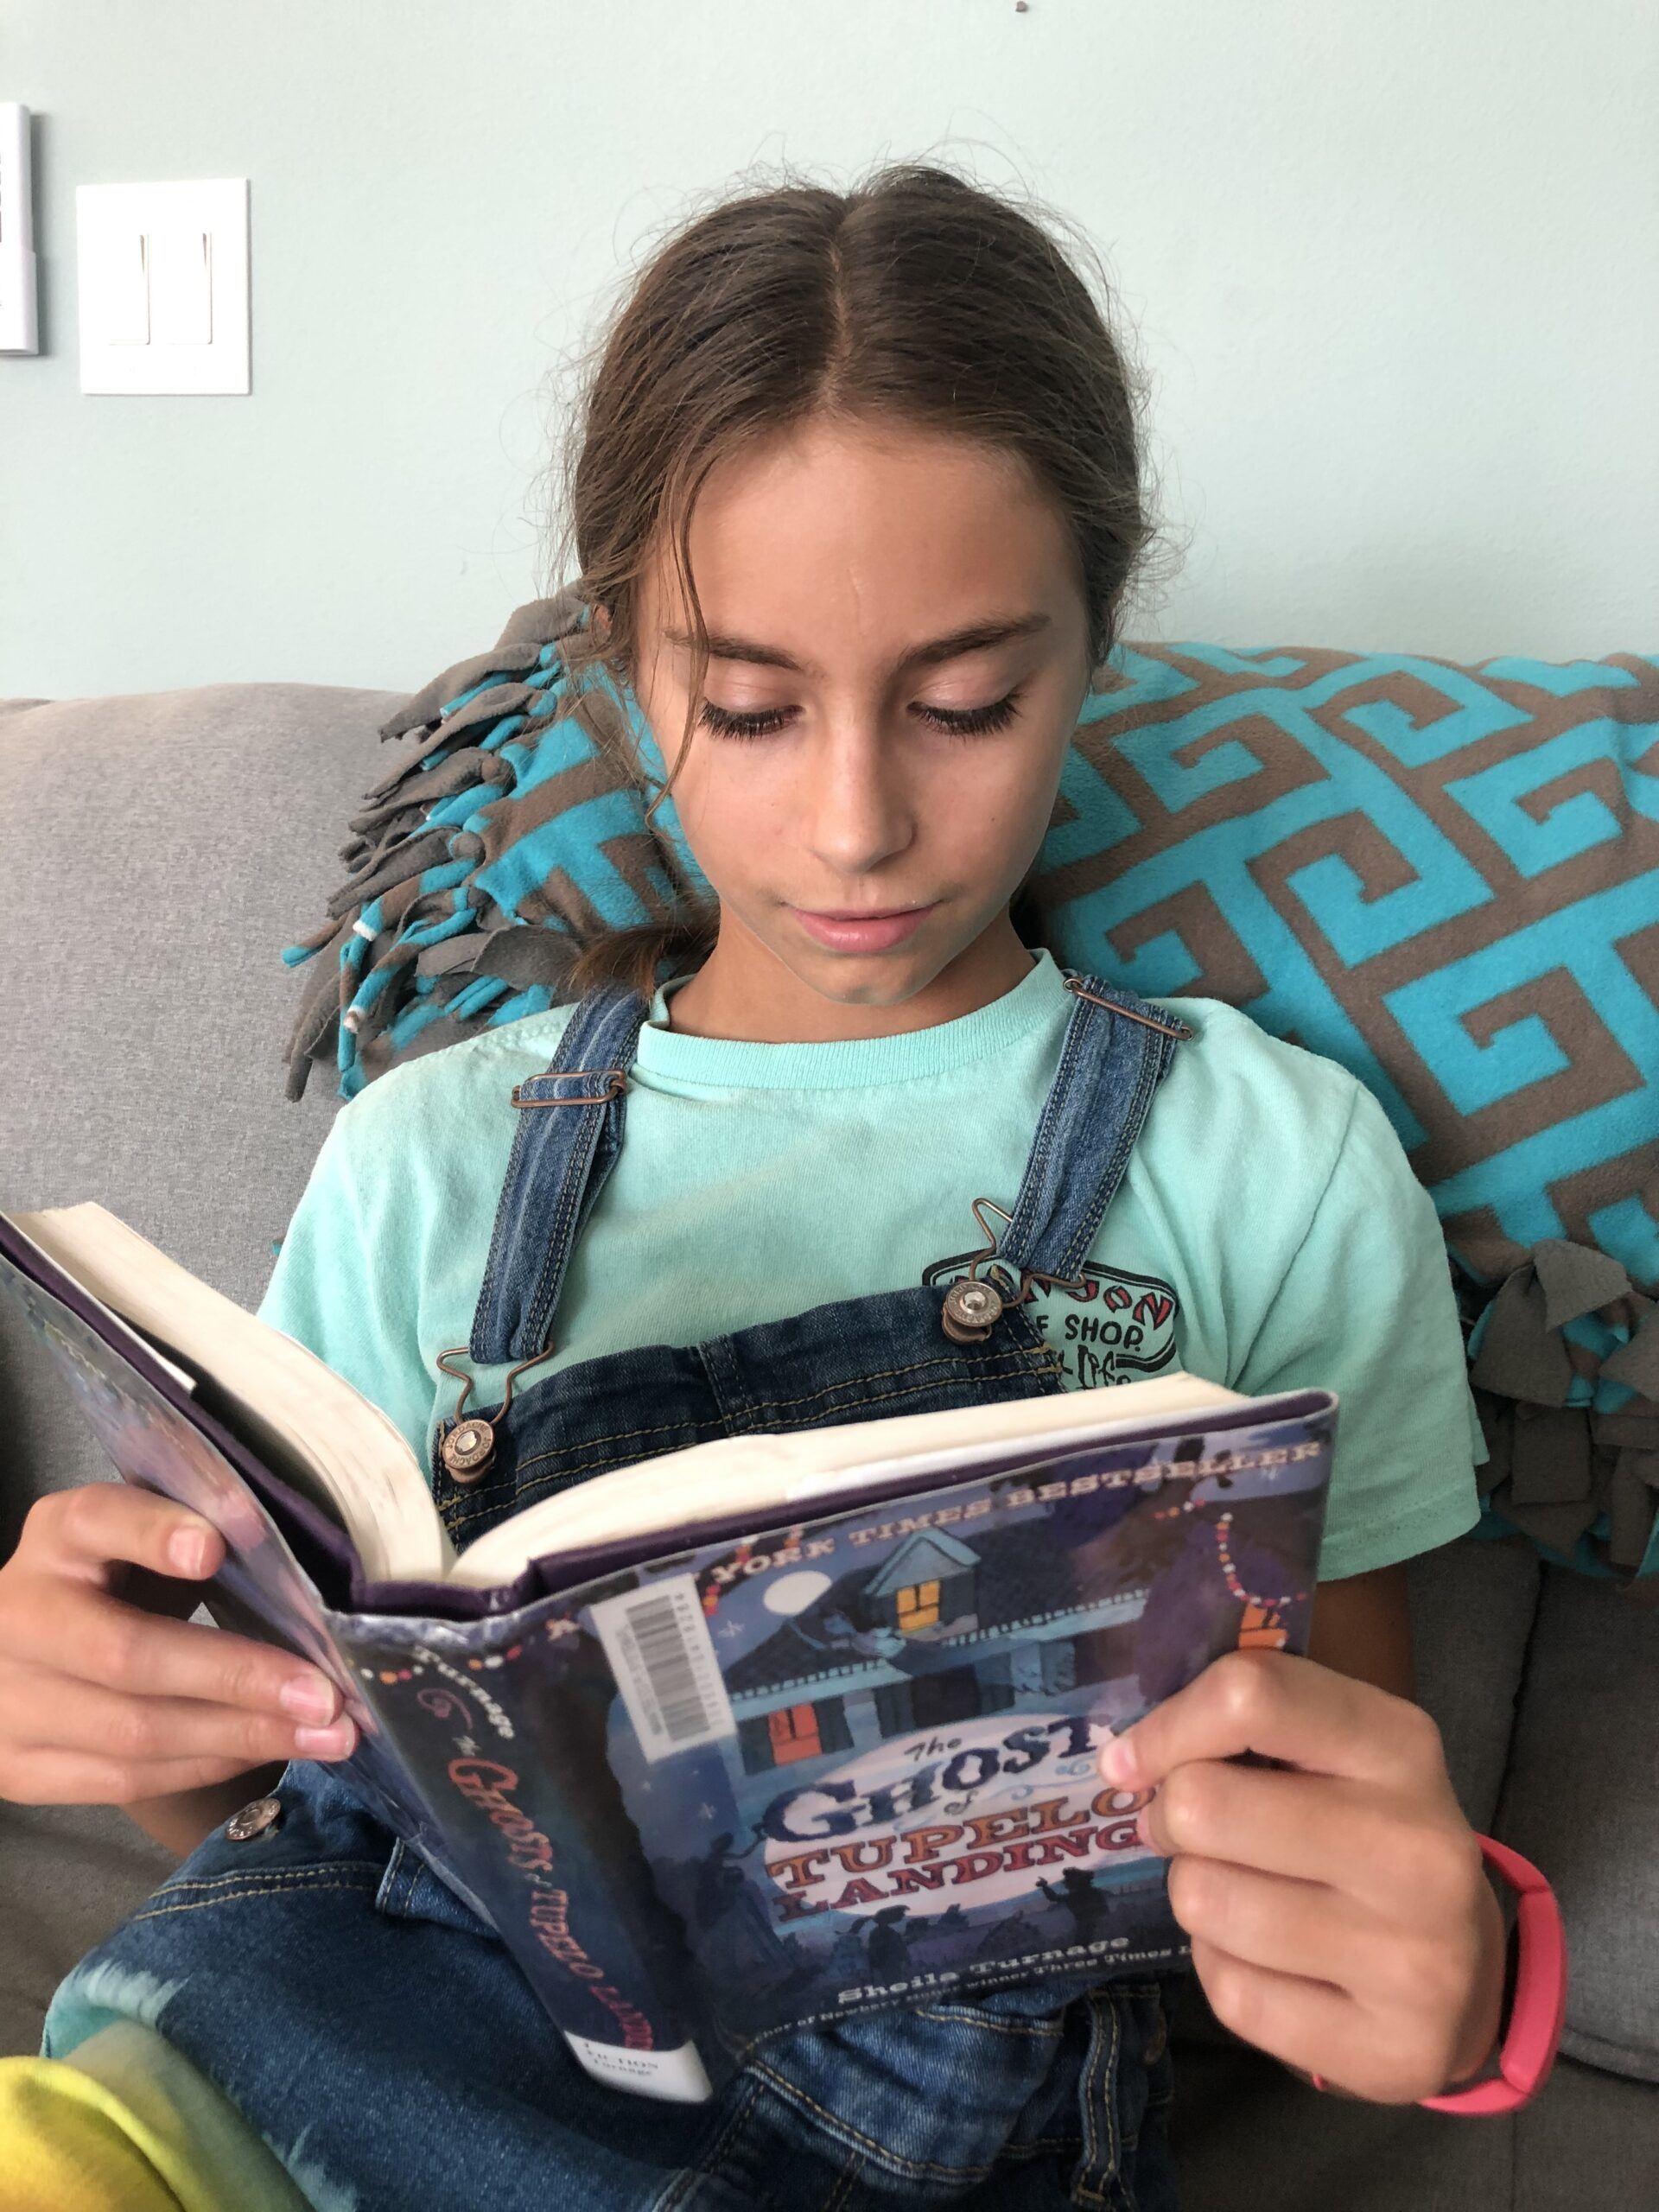 11 year old girl, Kinley, reading The Ghosts of Tupelo Landing for the children's book review.